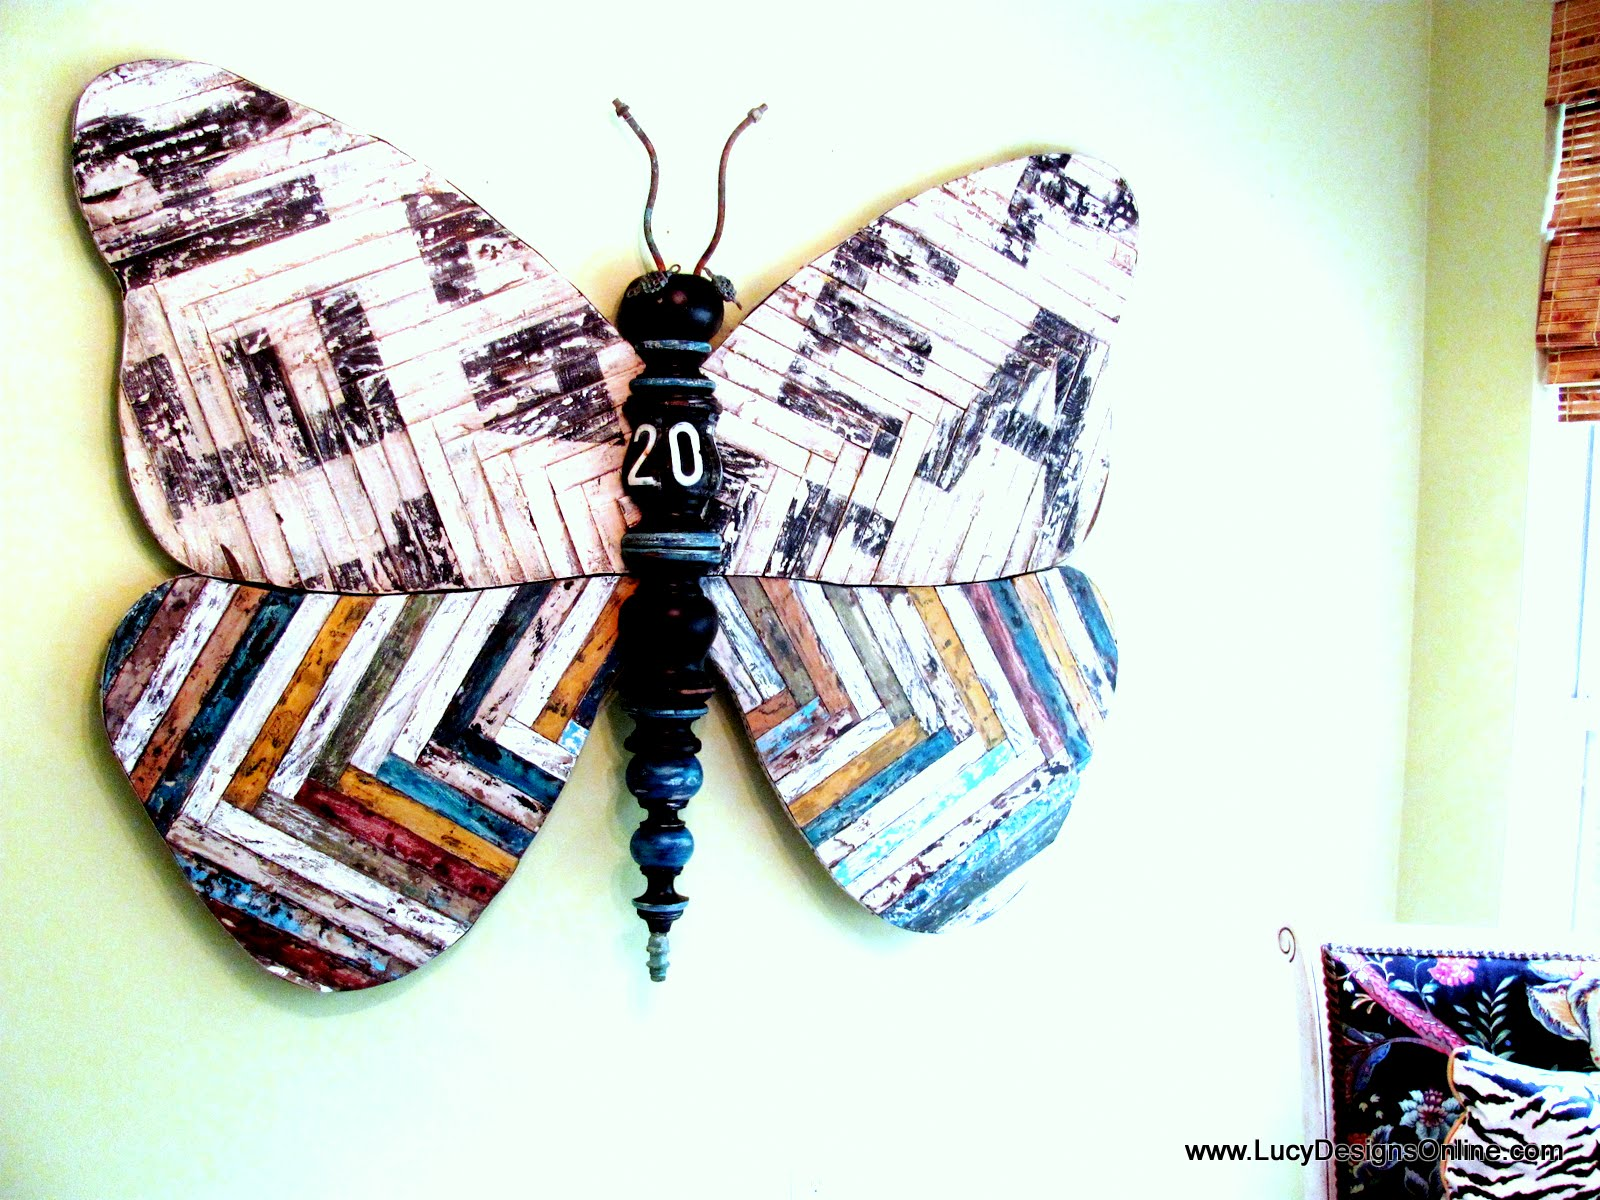 Large 5FT Mixed Media Butterfly Art with Reclaimed Wood and Vintage ...